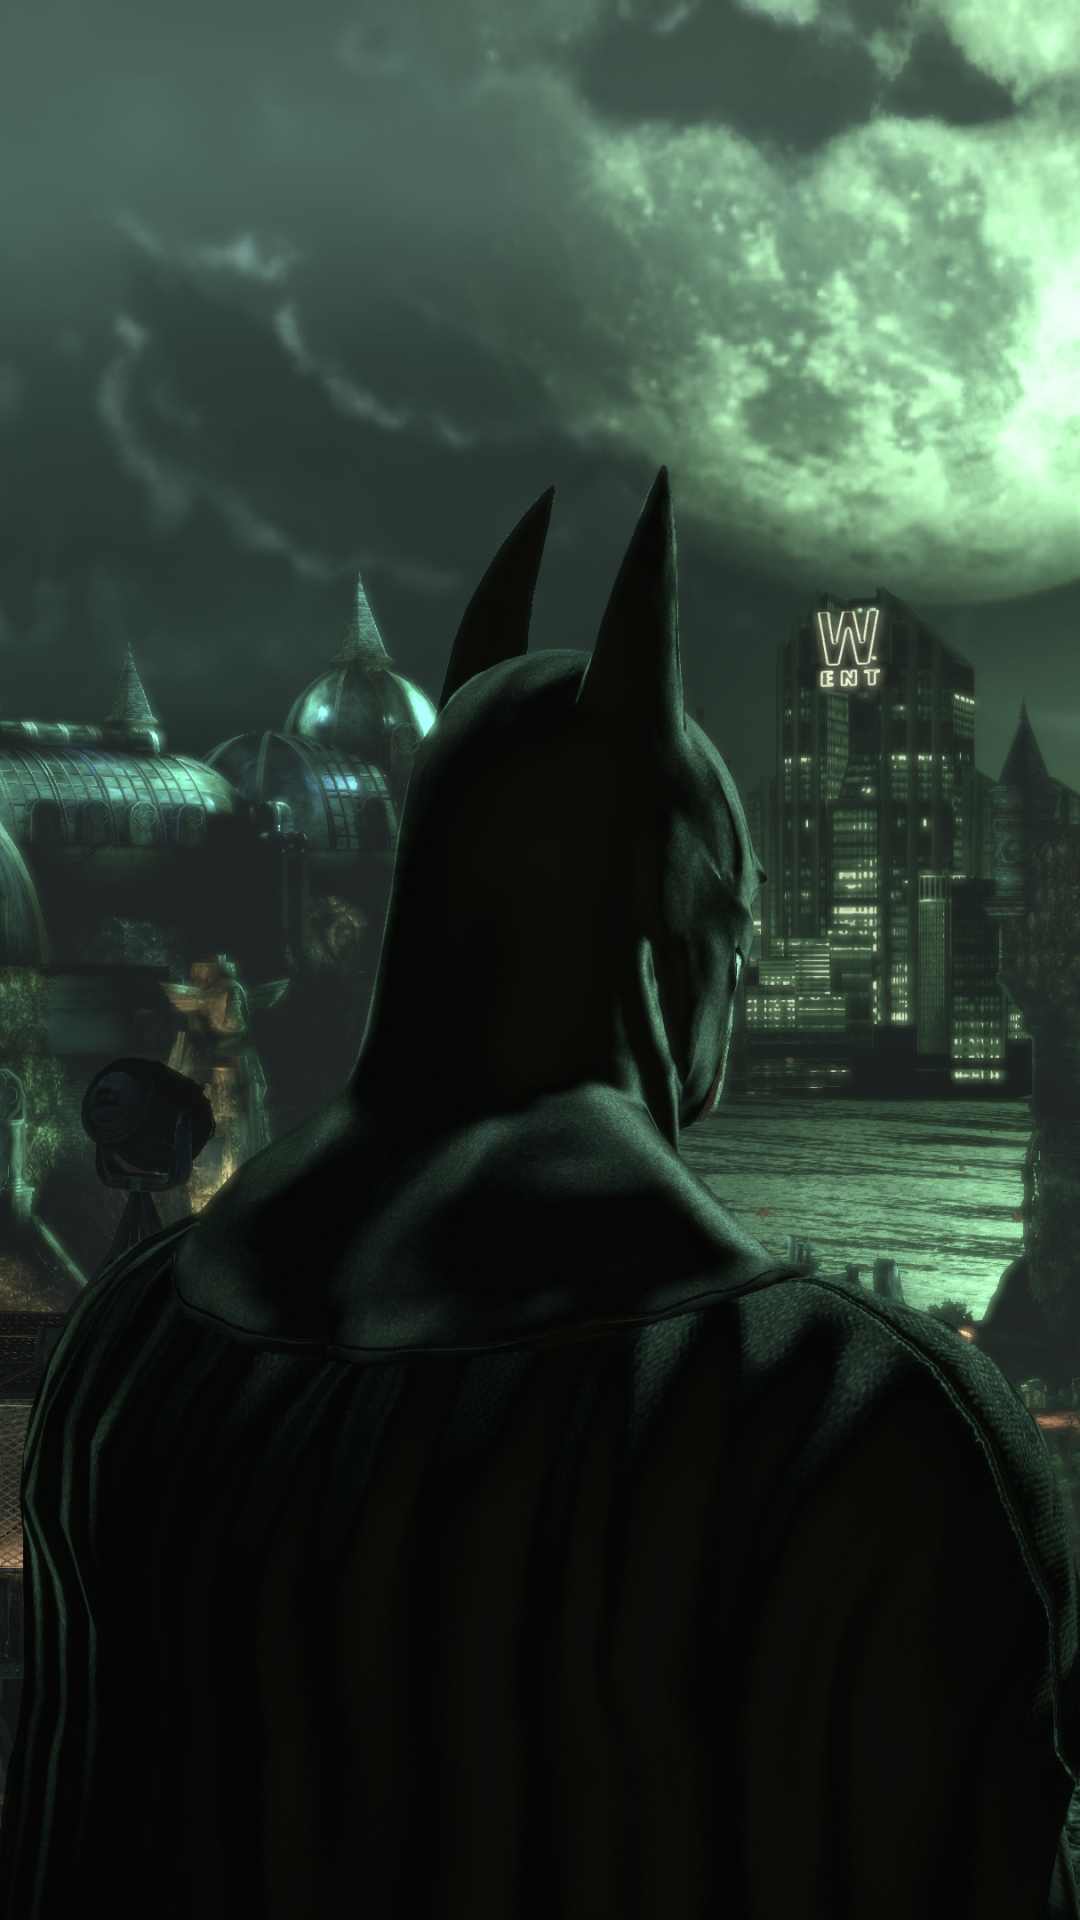 video game/batman: arkham asylum (1080x1920) wallpaper id: 616057